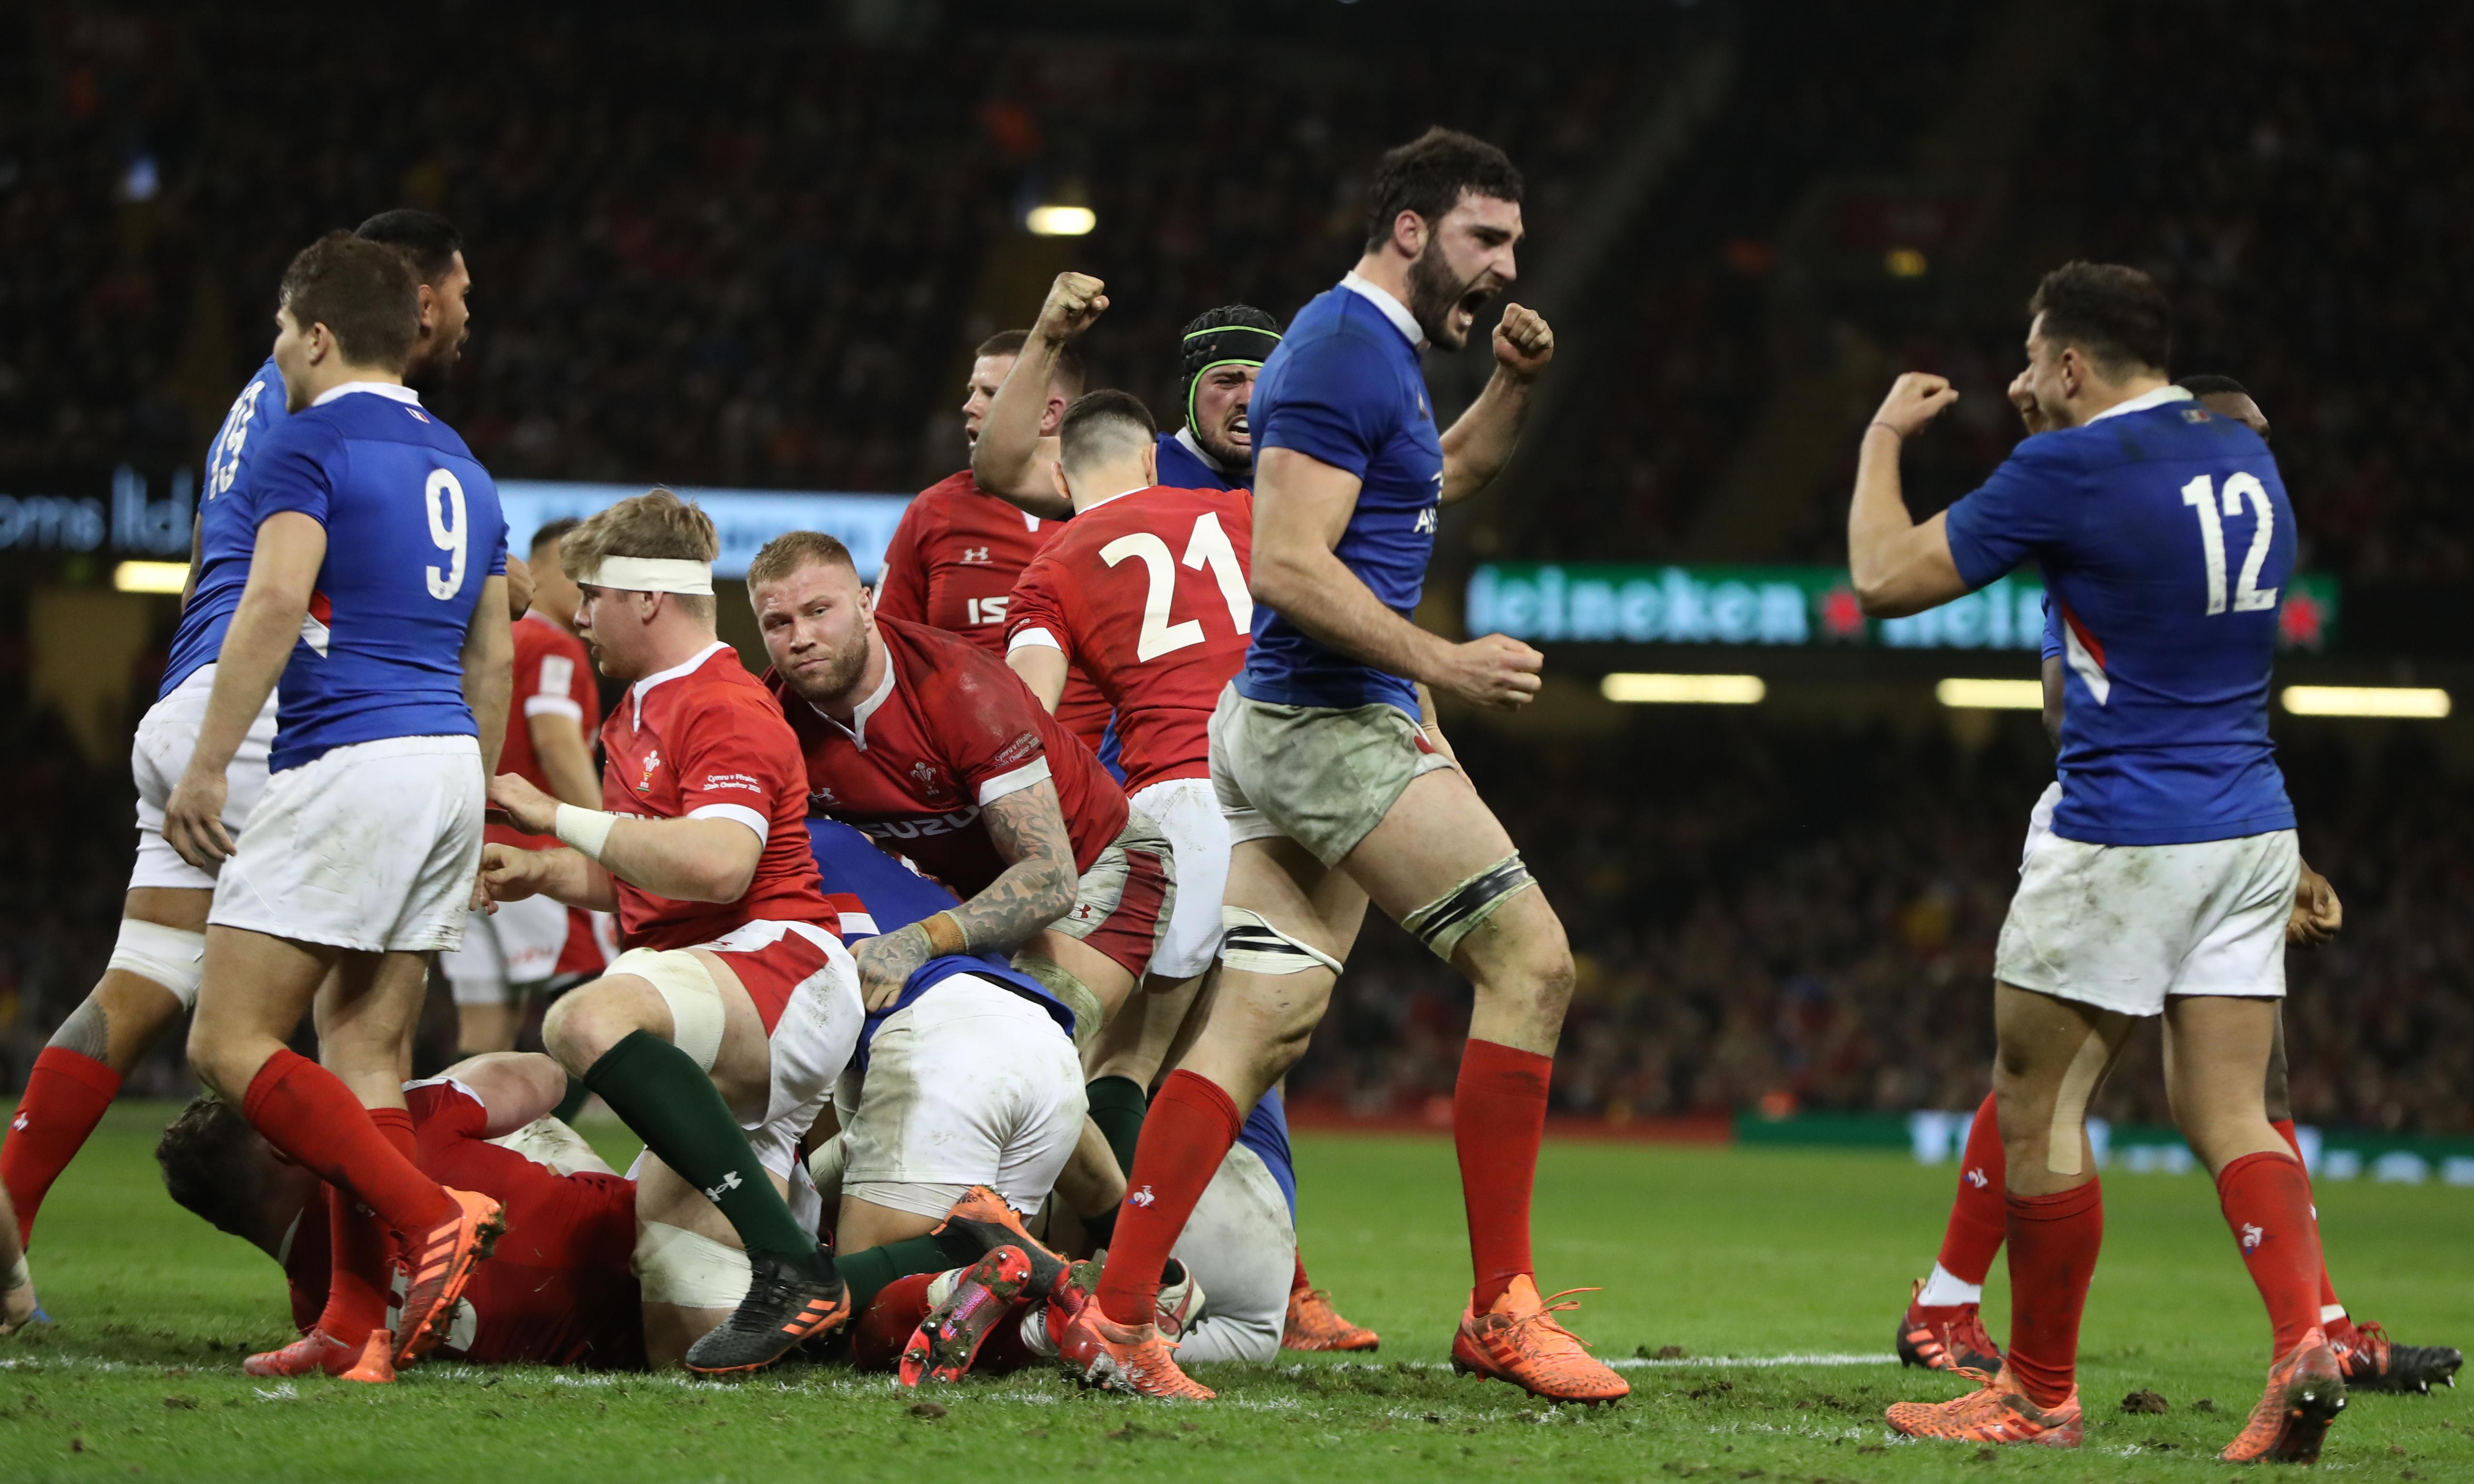 'You've got to scrum straight': Pivac livid over late France penalty